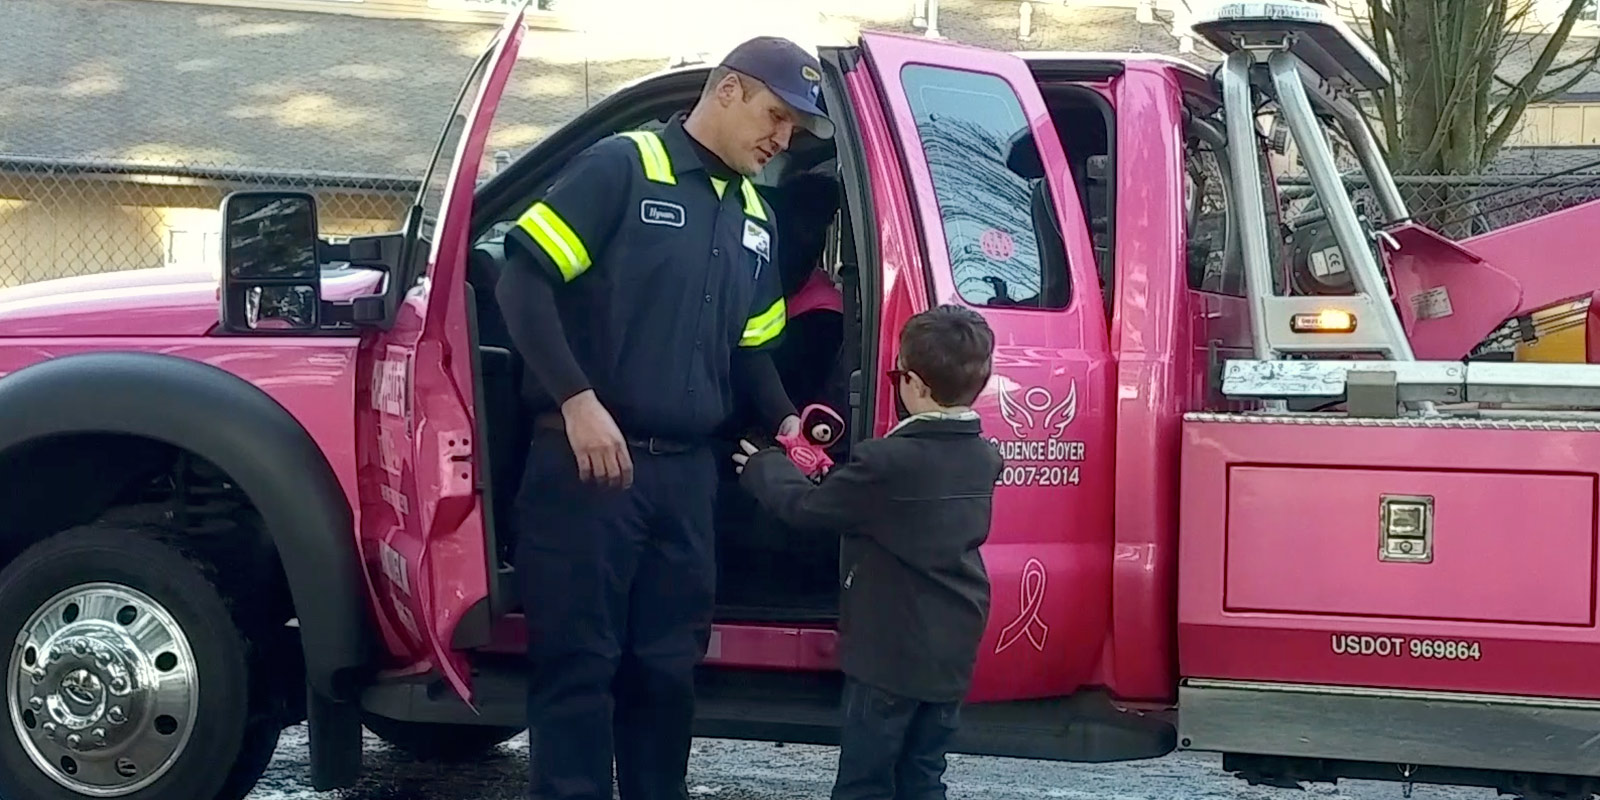 Chappelle's tow truck driver shares a pink bear with a child in Vancouver WA